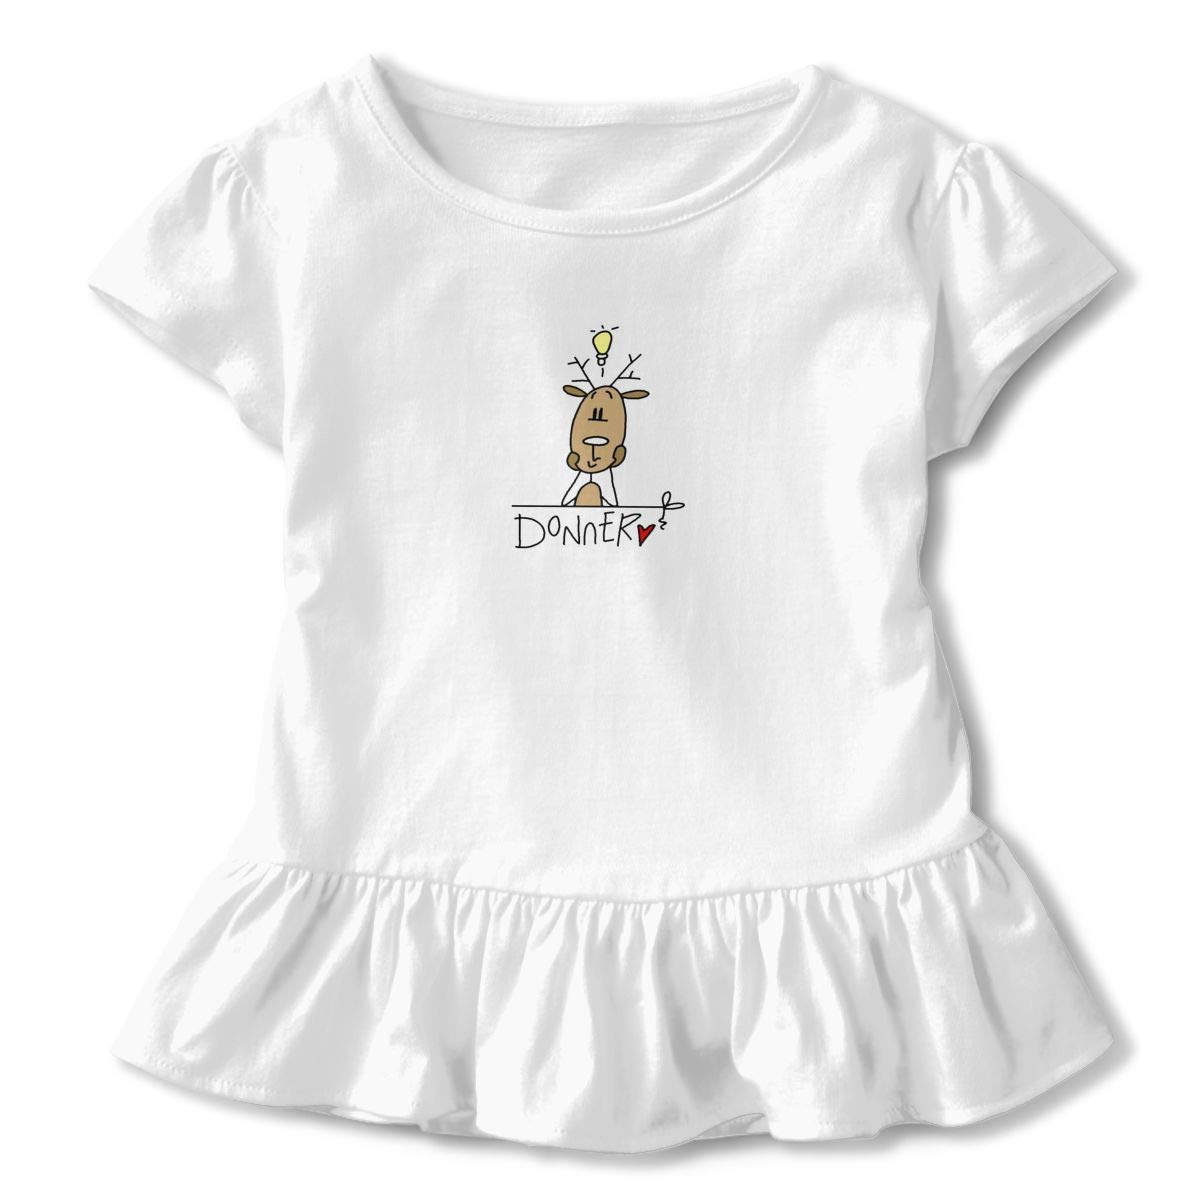 QUZtww Donner Reindeer Christmas Toddler Baby Girl Basic Printed Ruffle Short Sleeve Cotton T Shirts Tops Tee Clothes